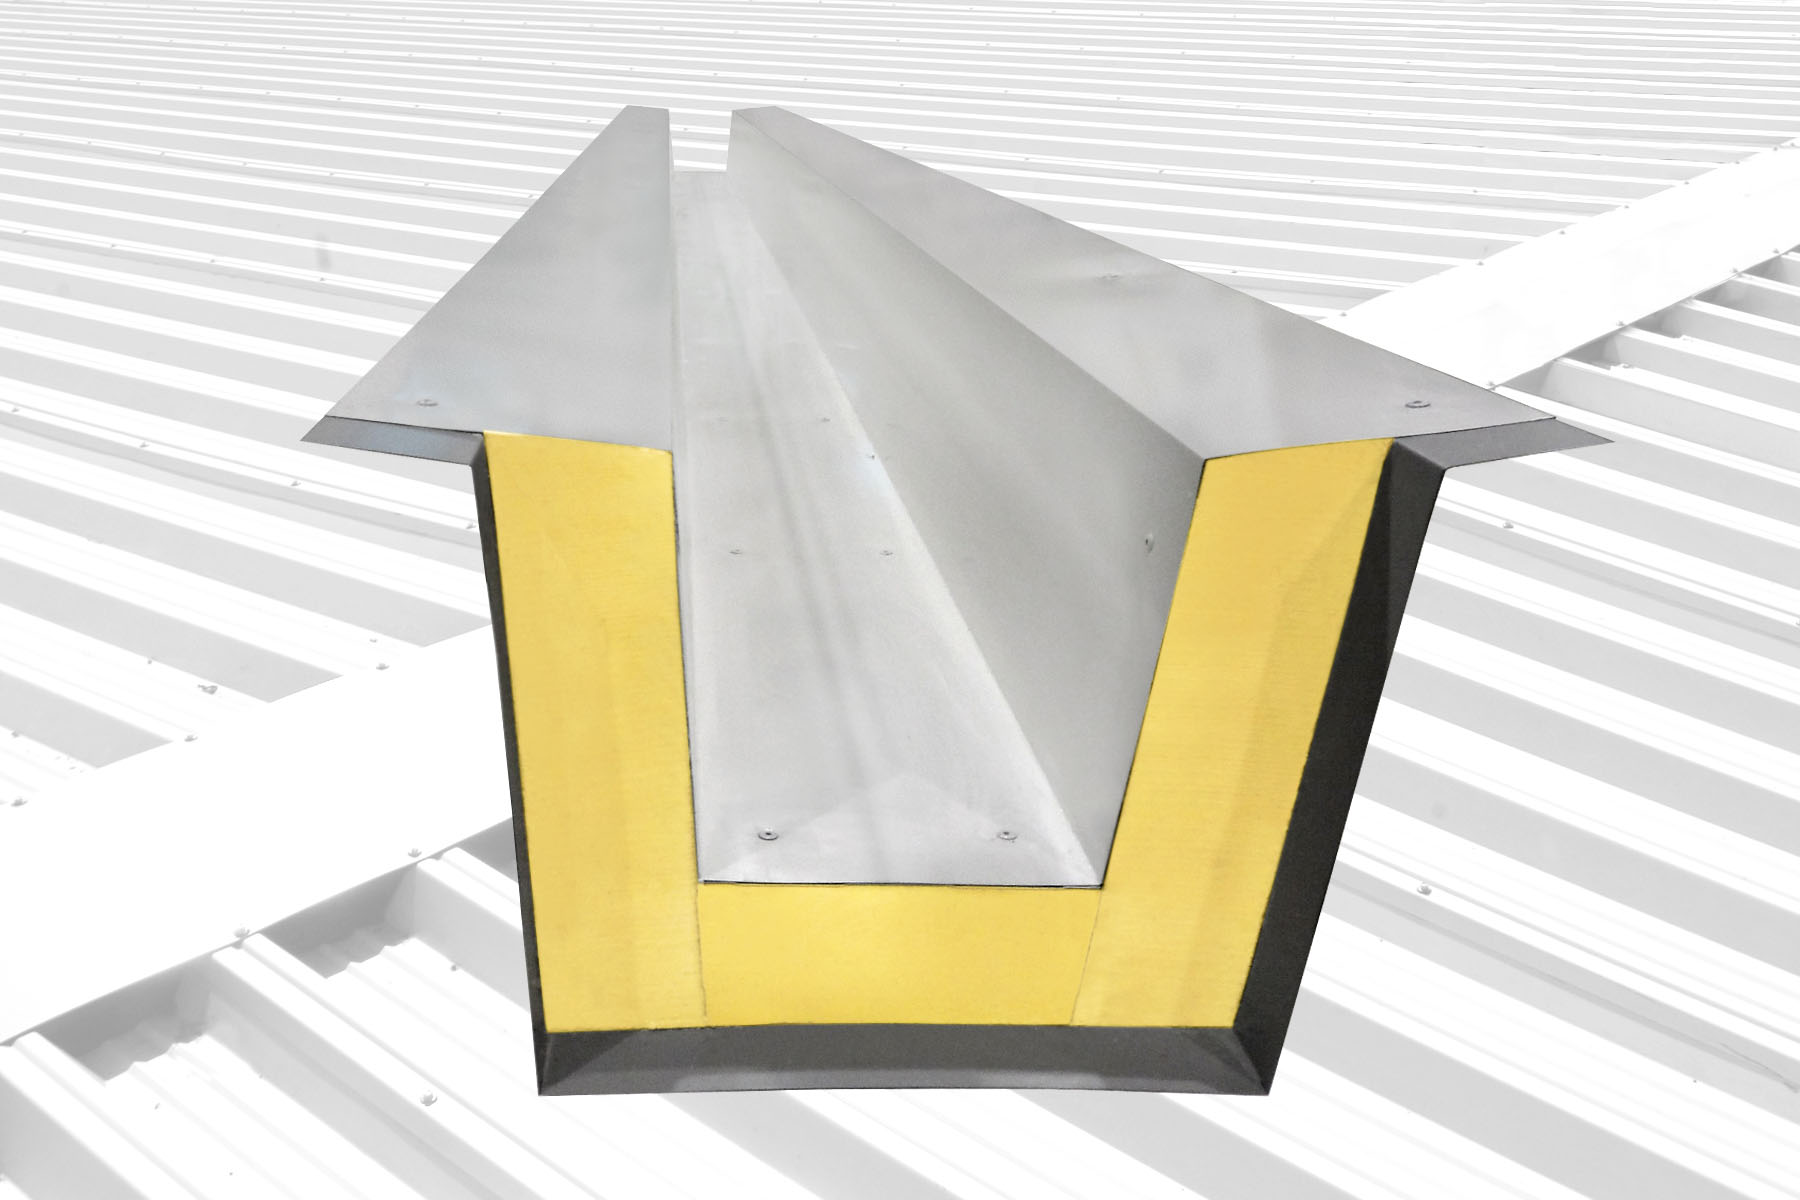 drain system from the sandwich panels